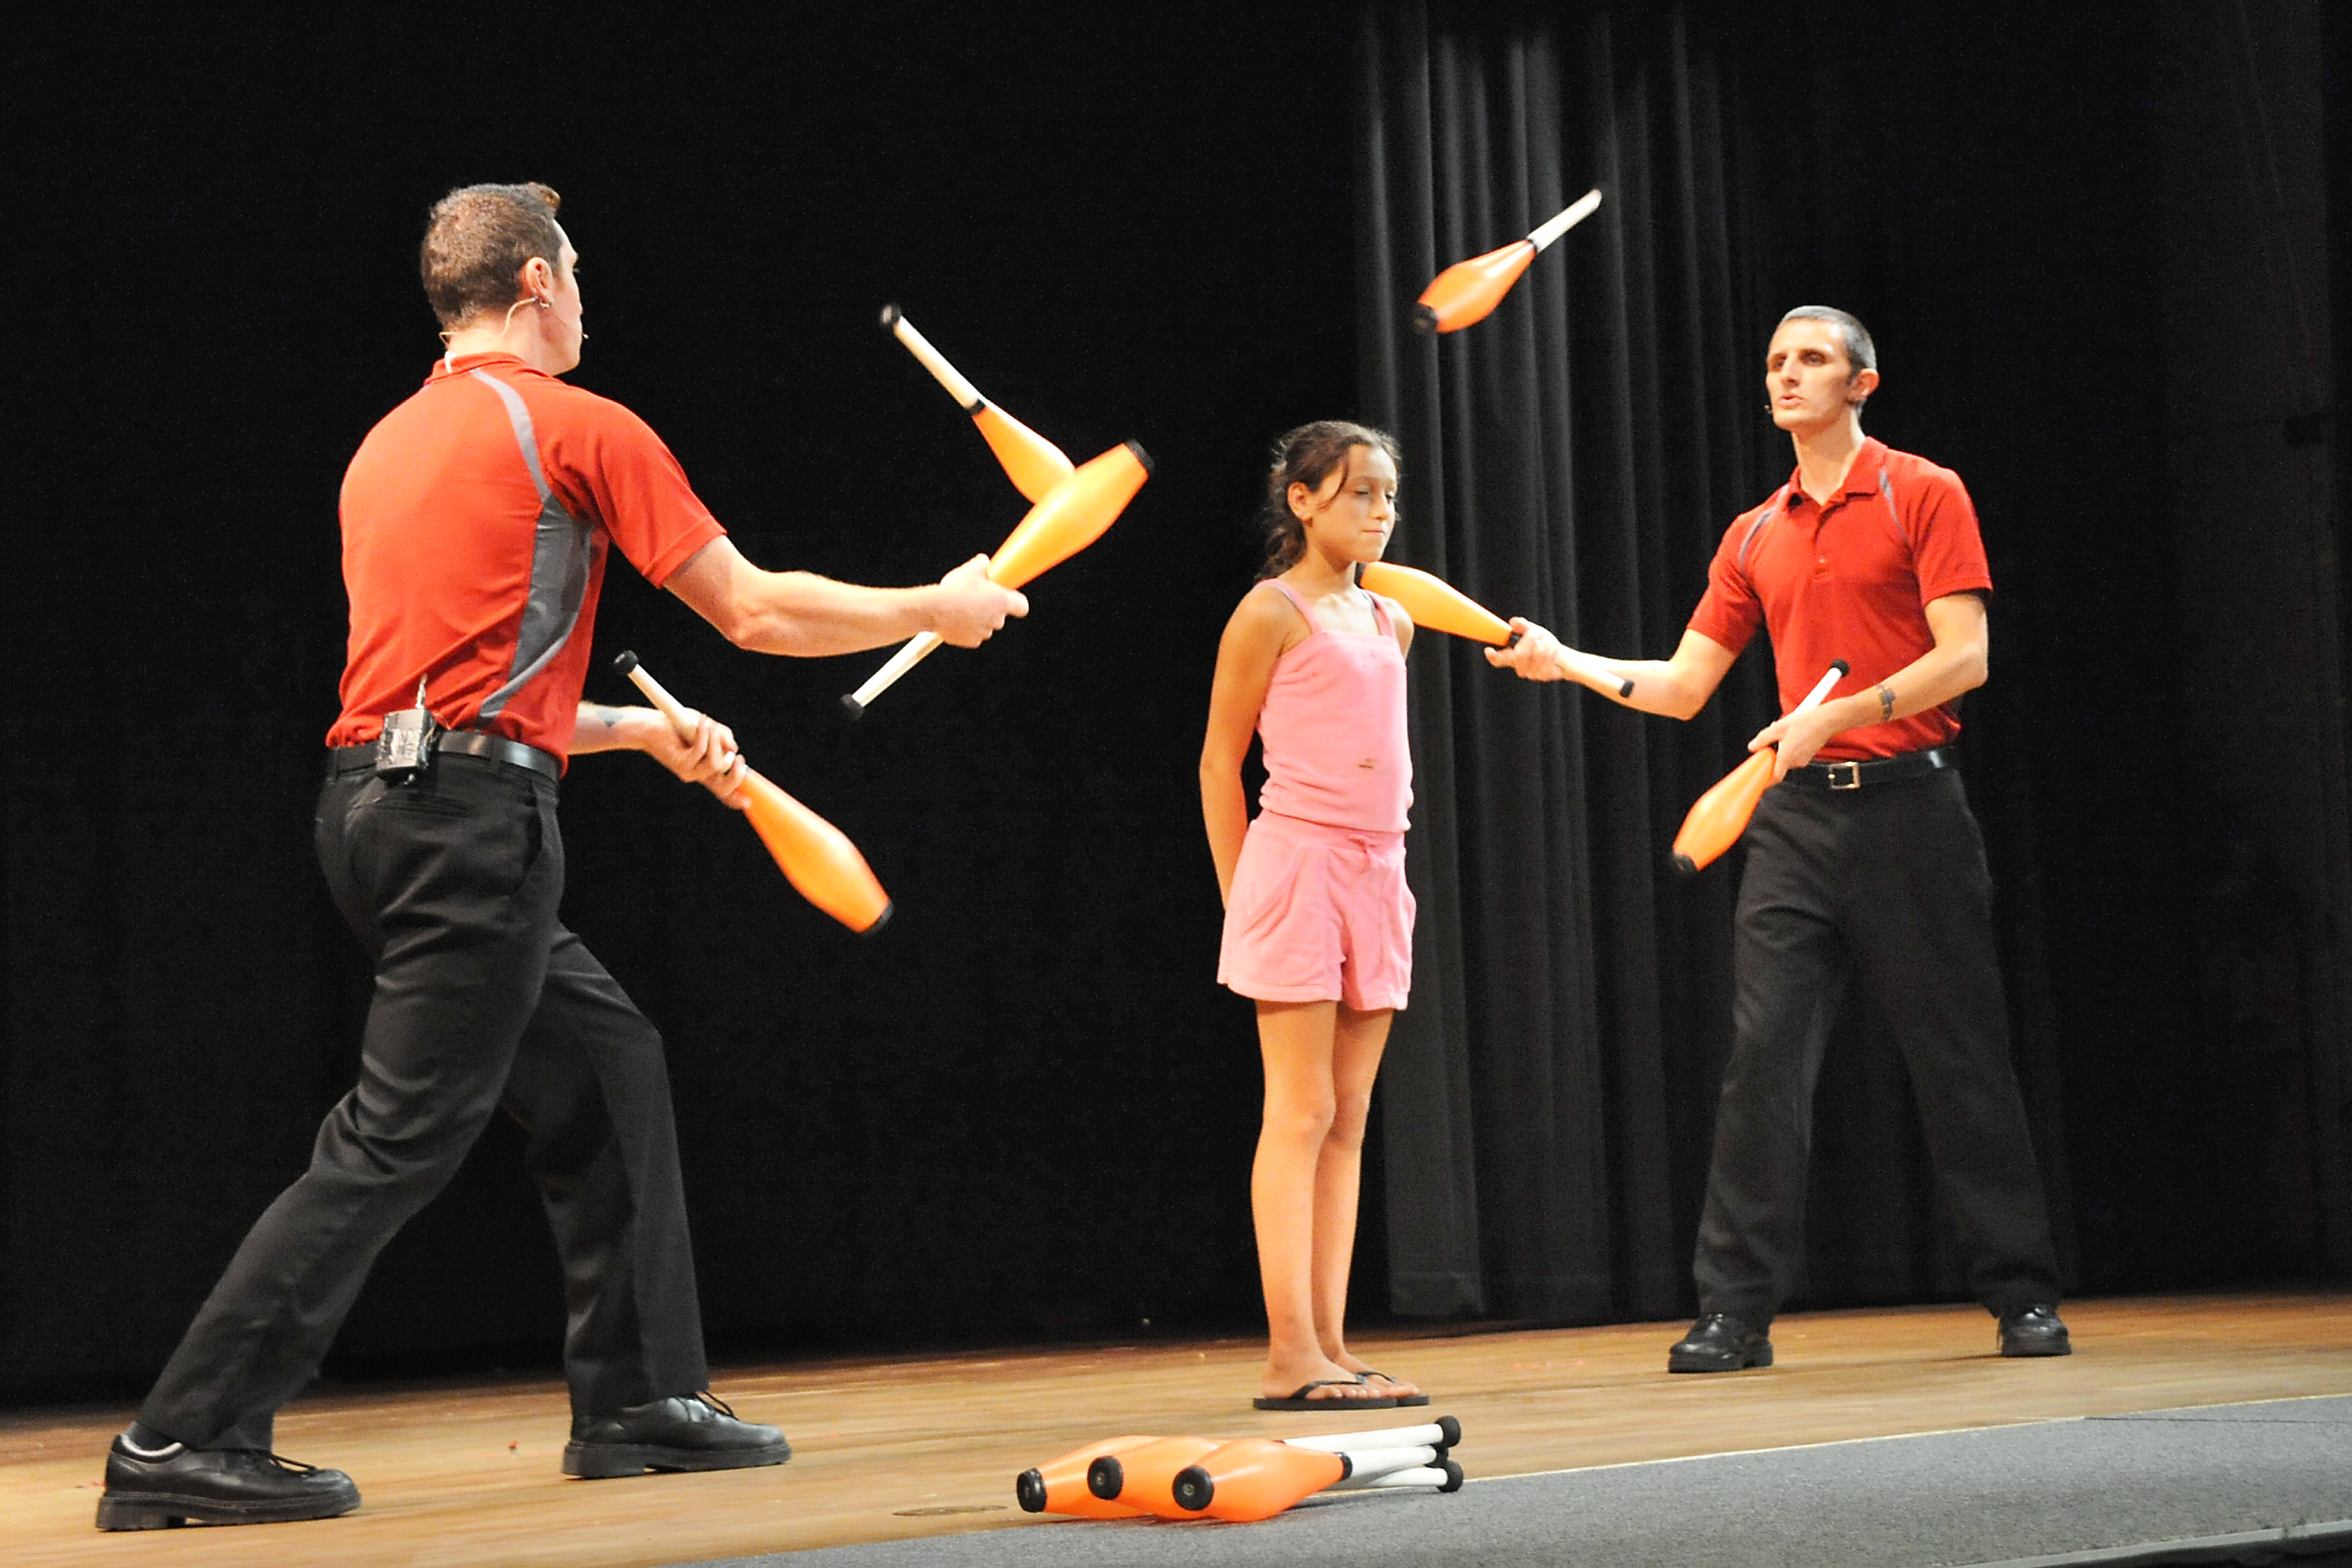 Are you daring enough to be in the middle of a juggling act?